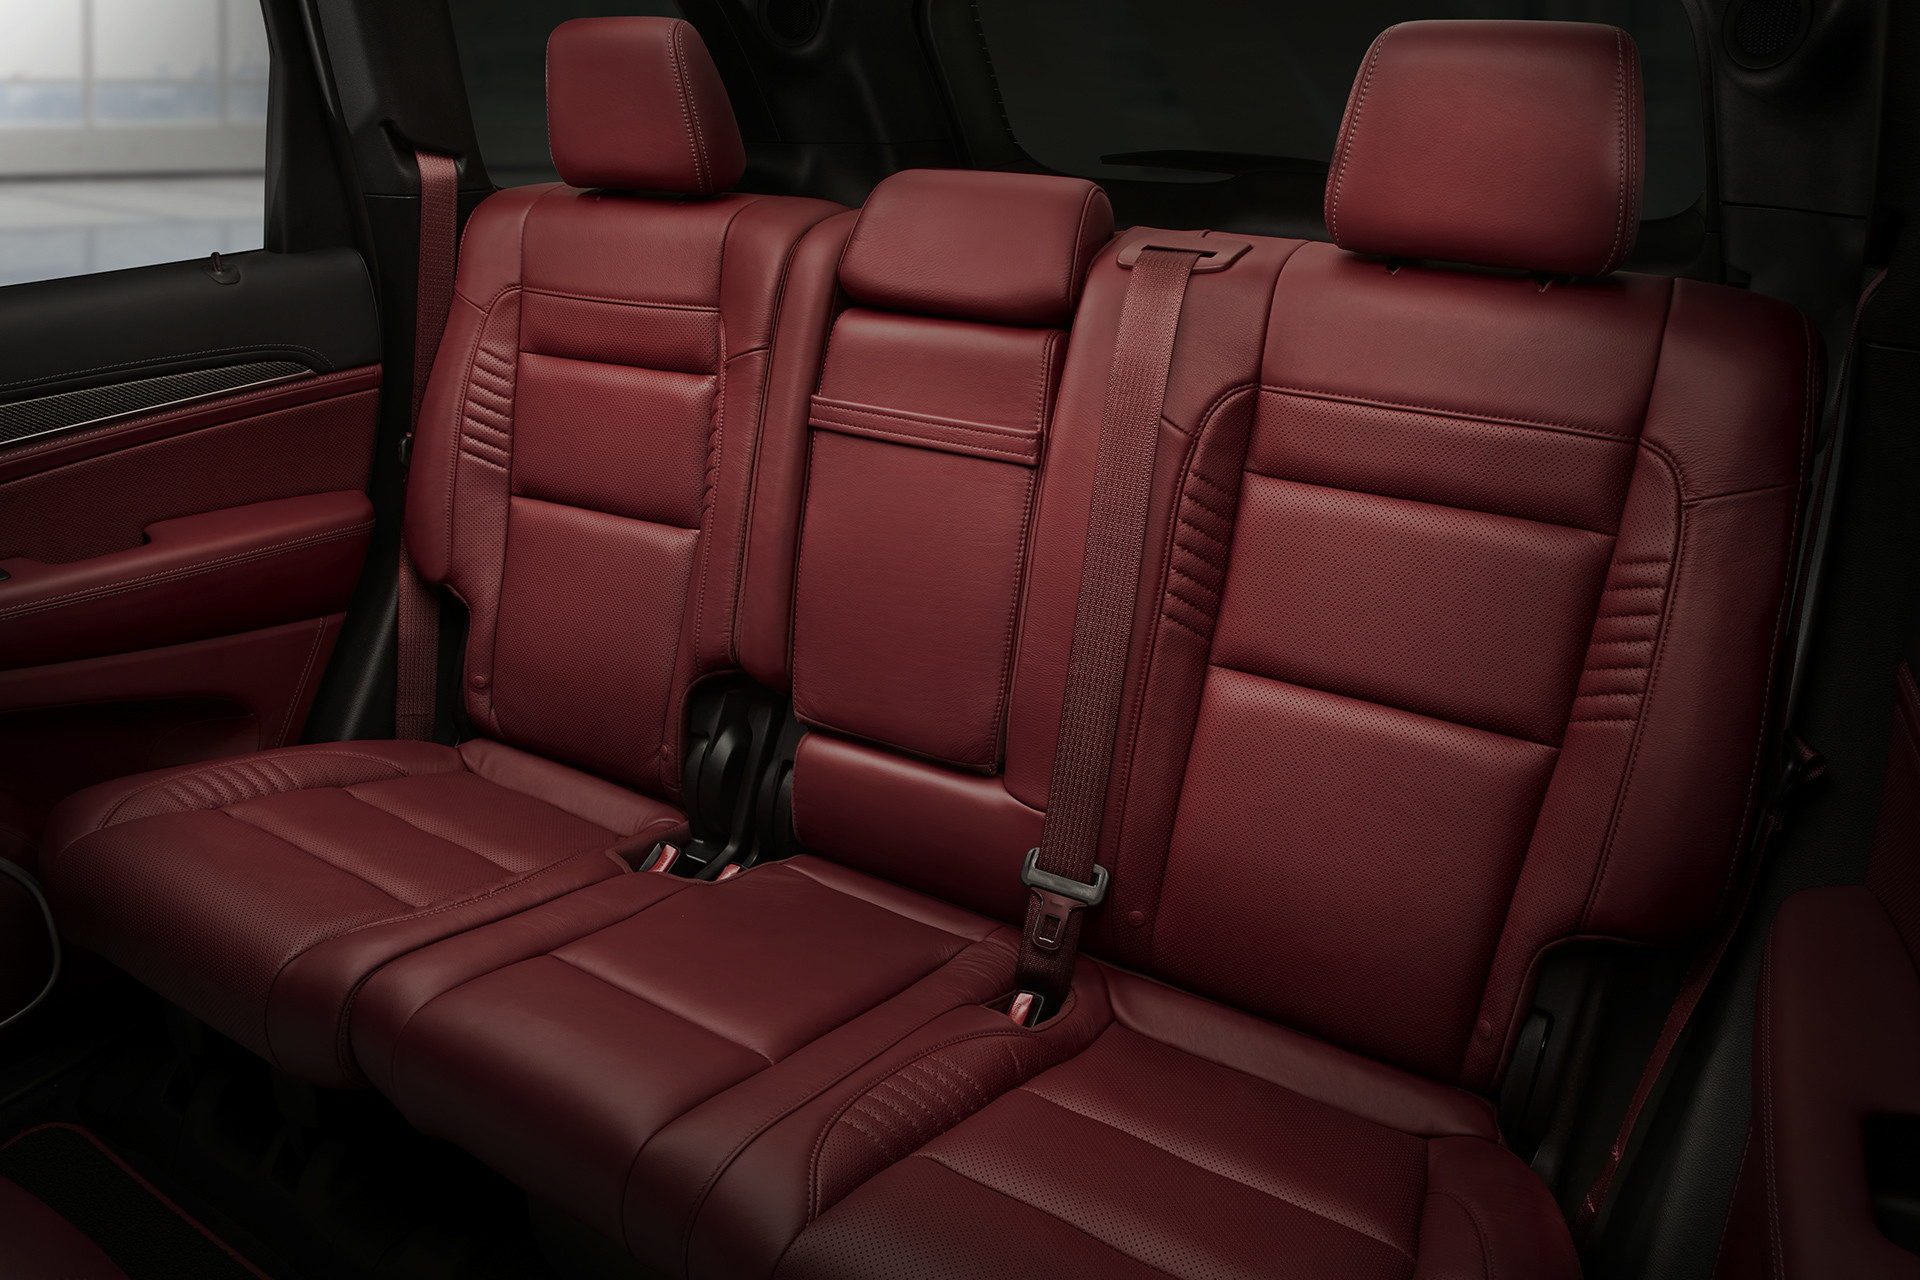 hight resolution of 2019 jeep grand cherokee interior view showing burgundy rear seats